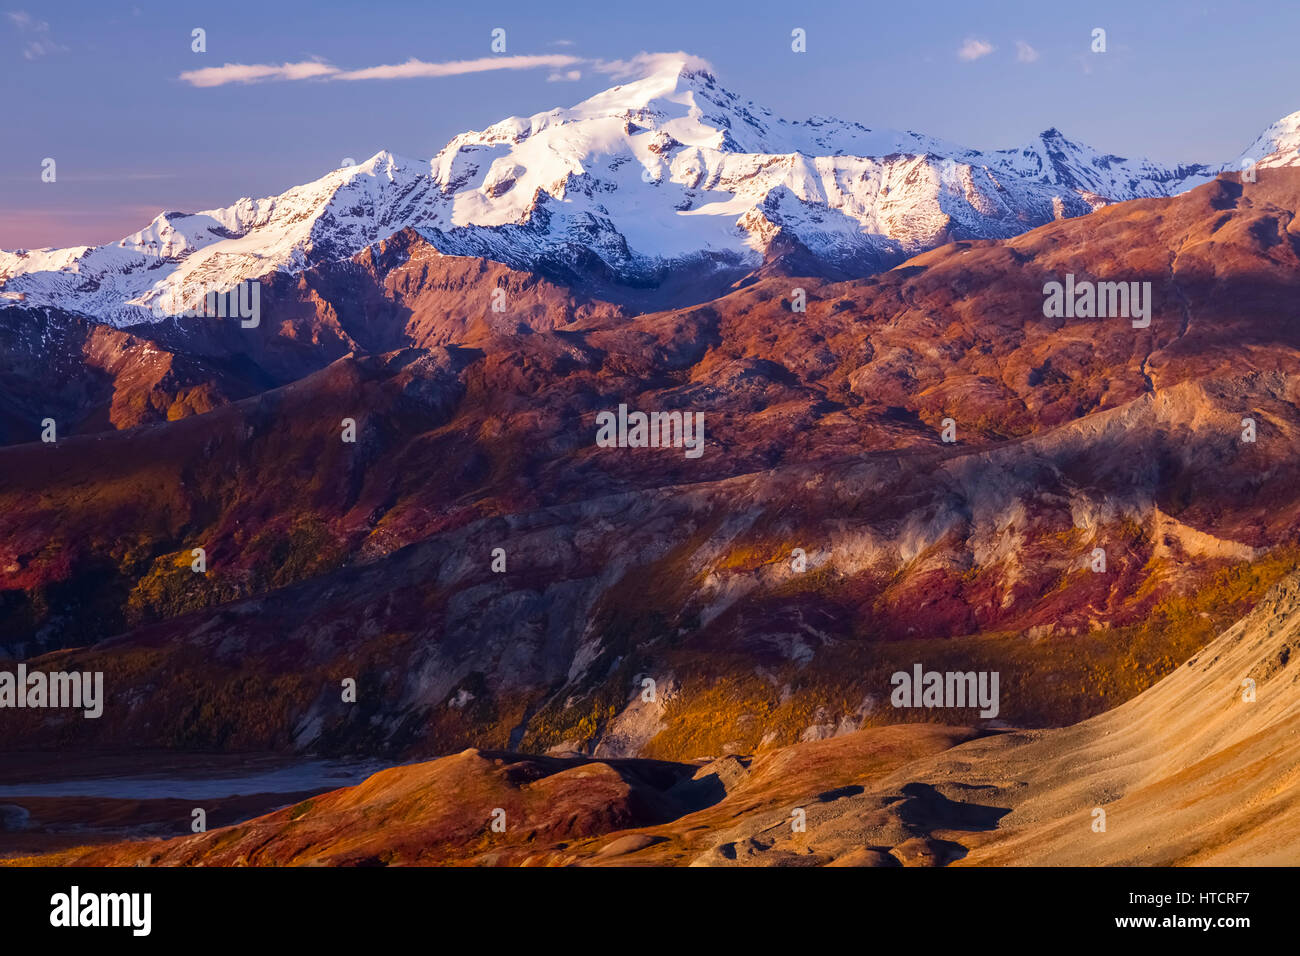 The sun sets on Mt. Silvertip in the Alaska Range with fall colors on the landscape below, Interior Alaska, USA - Stock Image